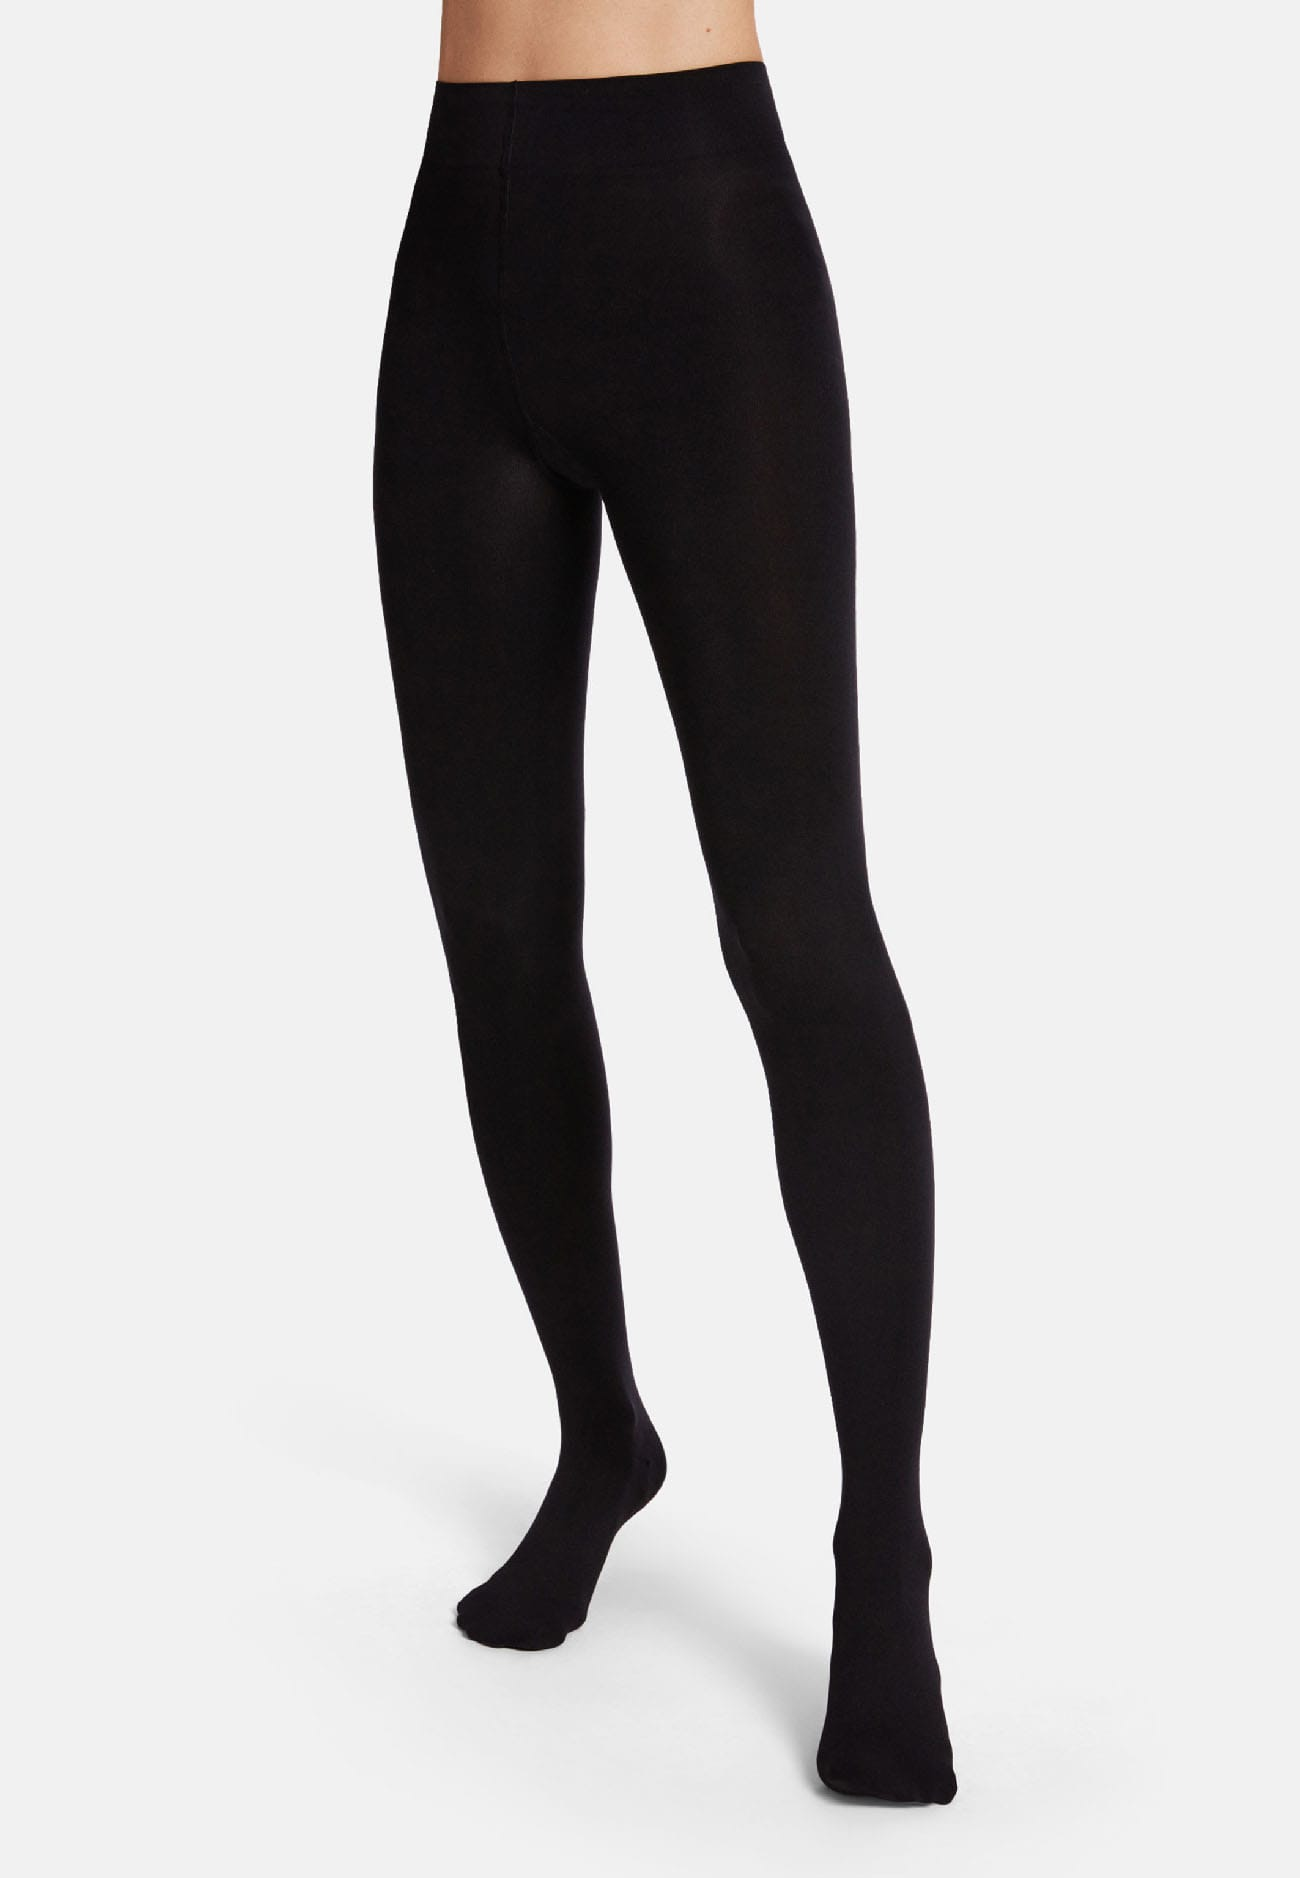 18975 Ind.100 Leg Support Tights